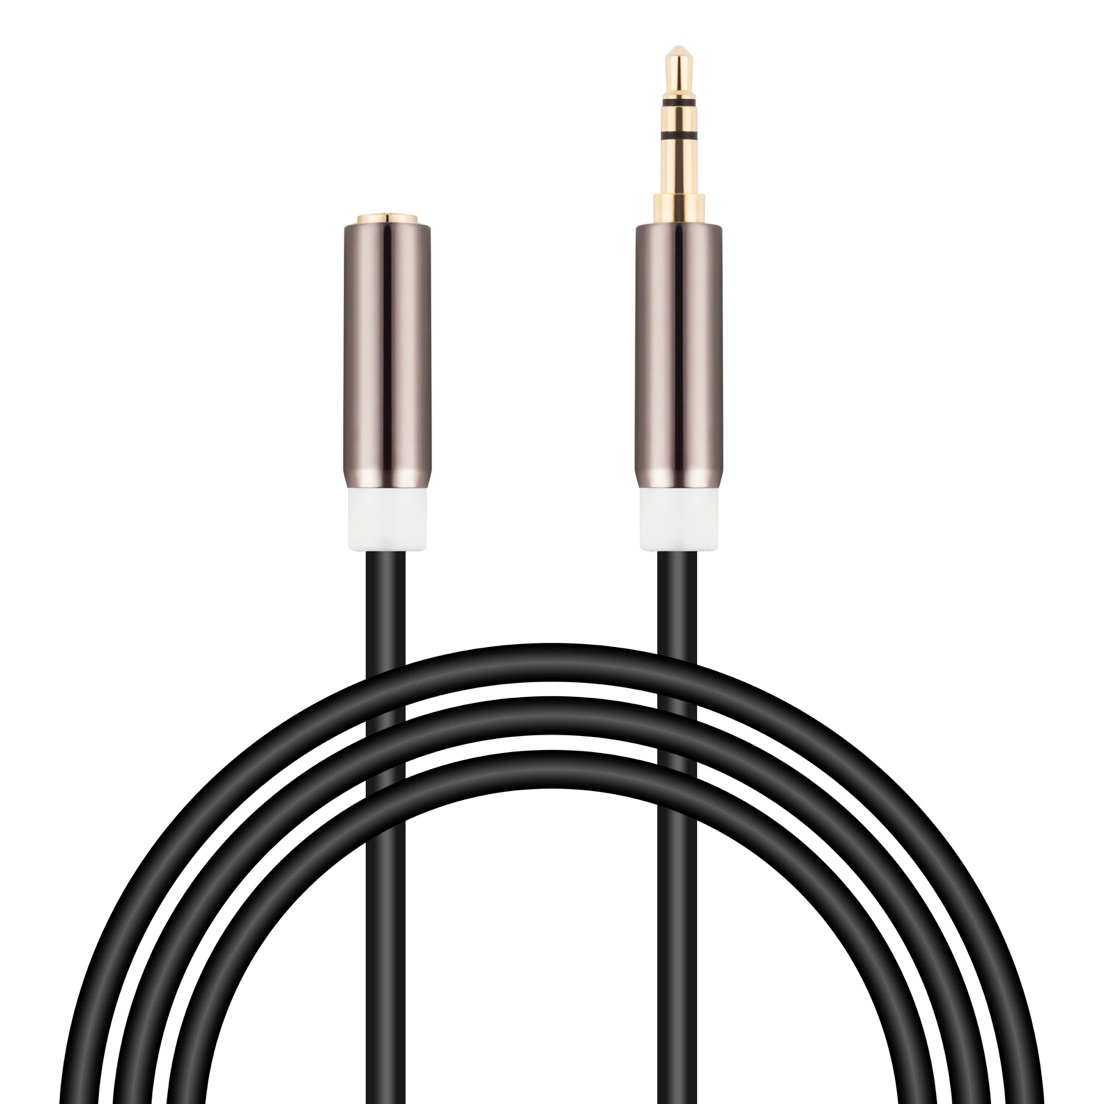 3.5mm 3-Pole Male Female Extension Cable / Headphone Adapter for iPhone, iPad / Smartphones